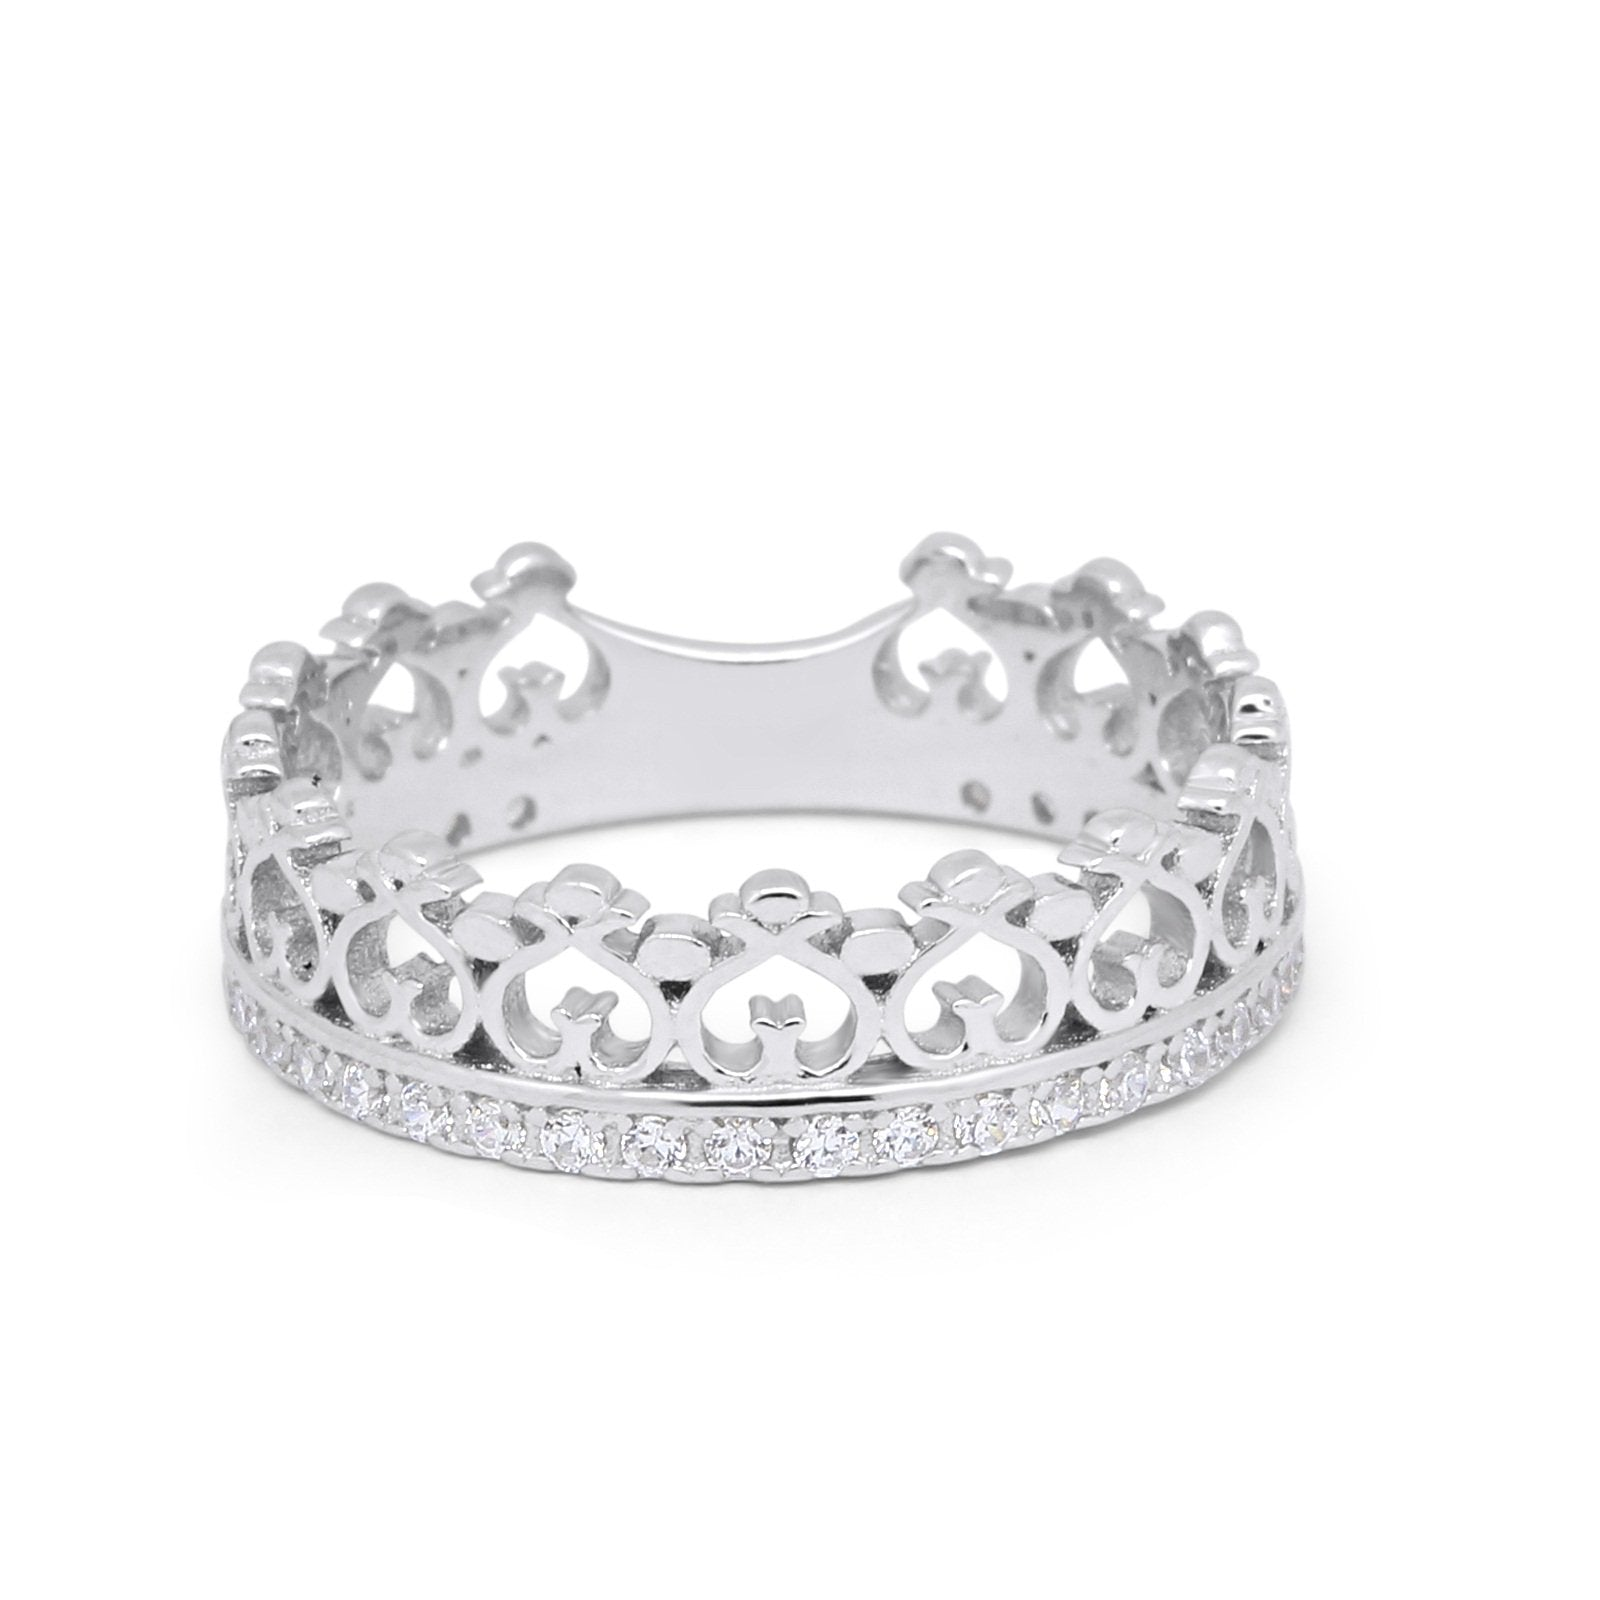 Eternity Heart Crown Band 925 Sterling Silver